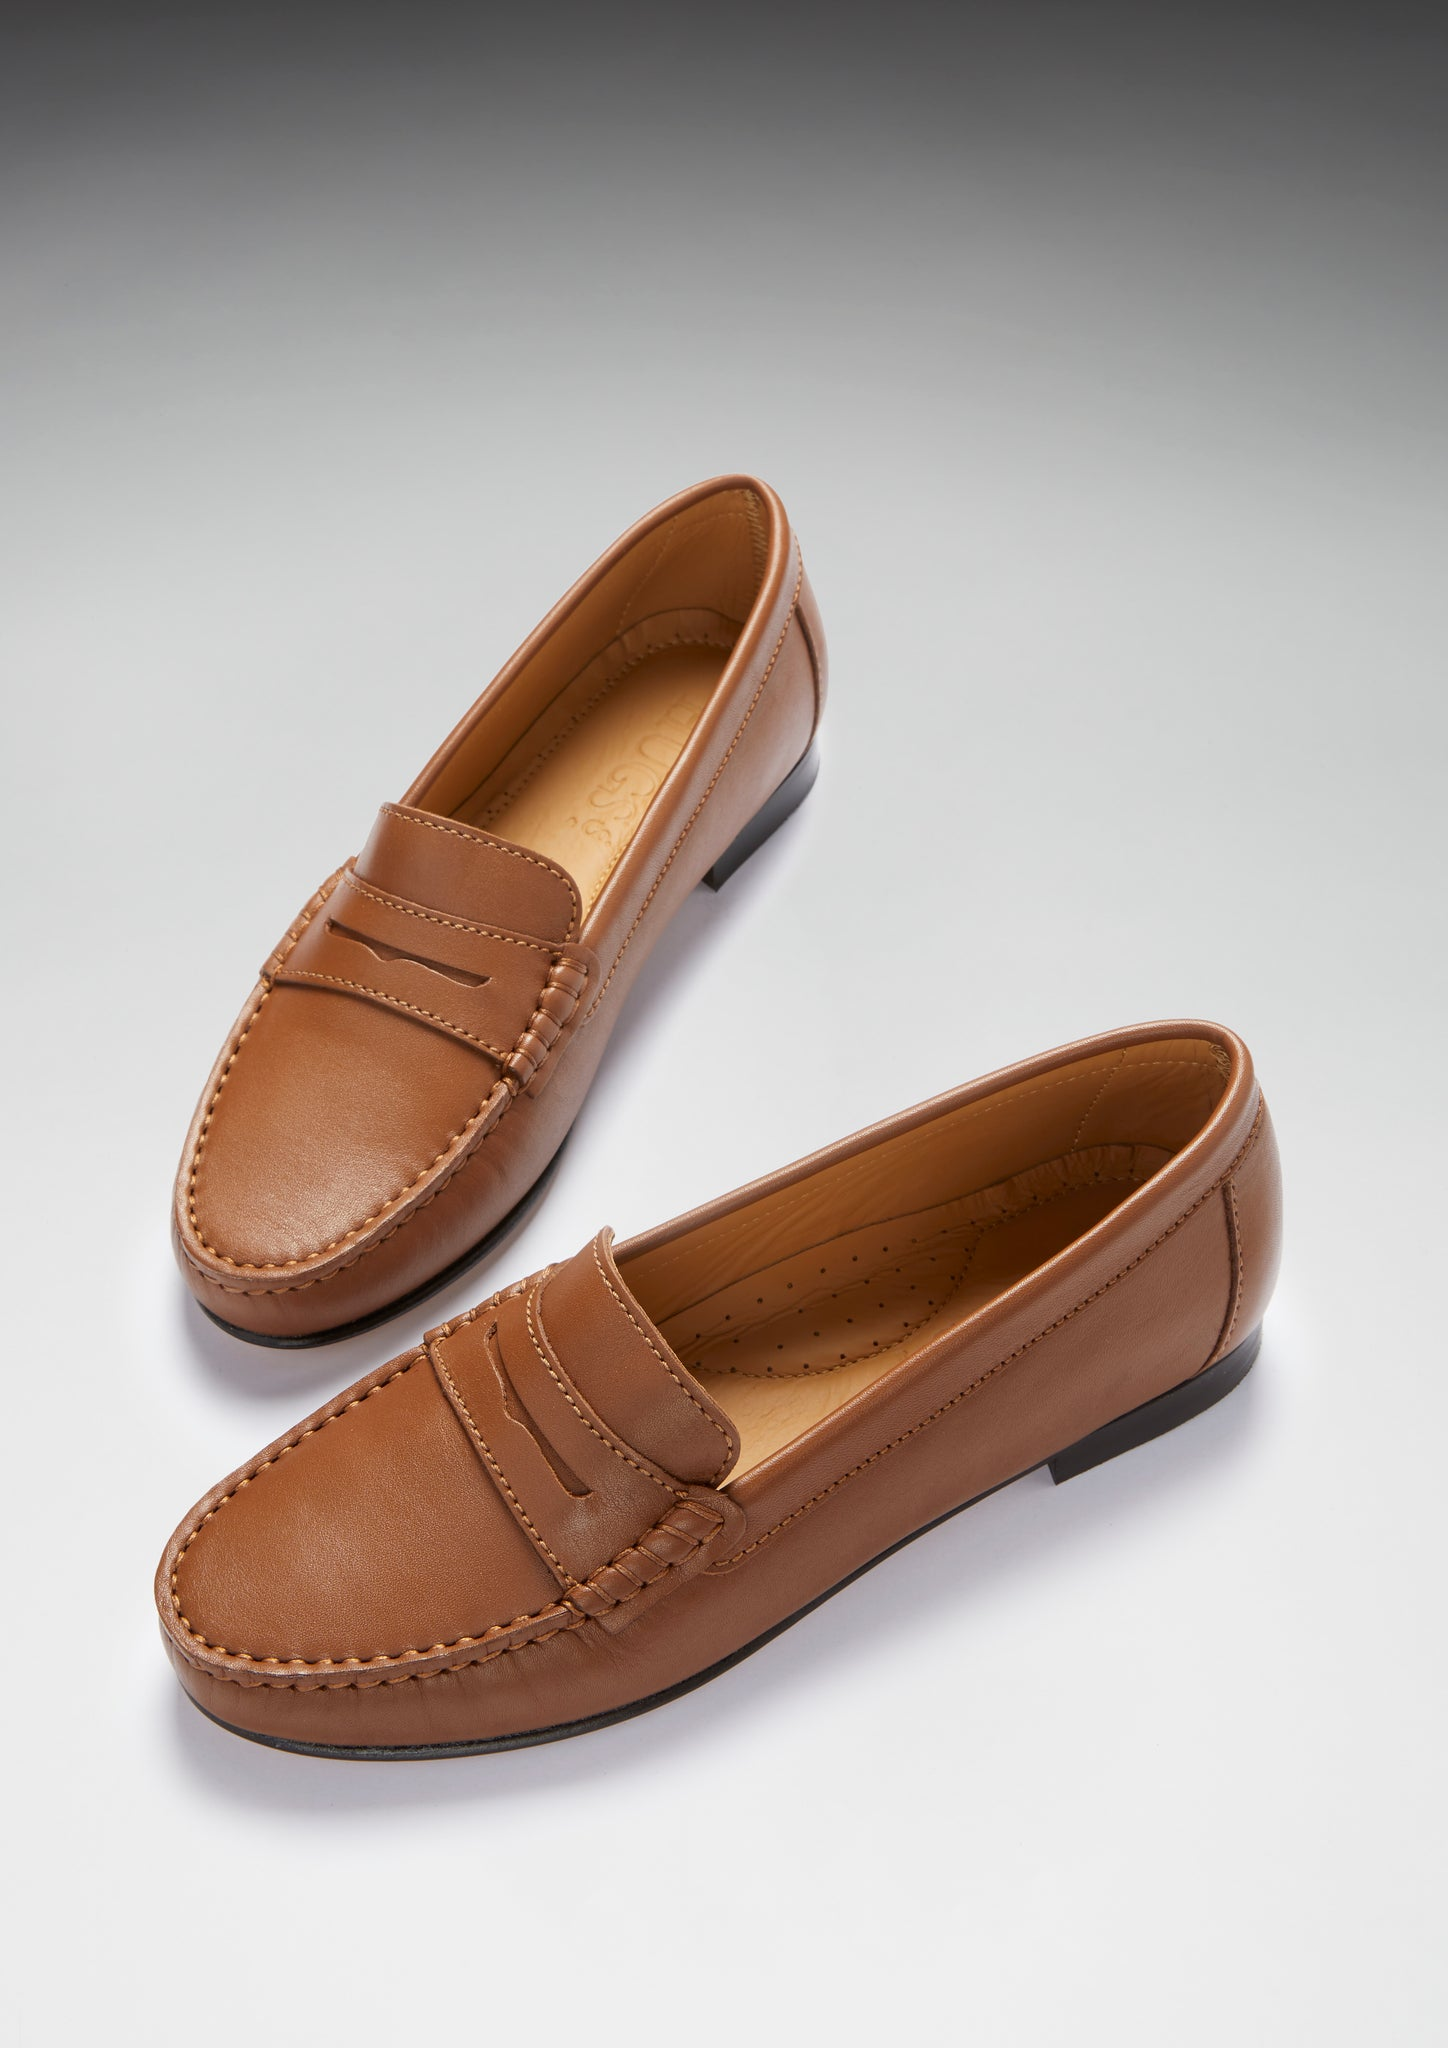 Penny loafers women's hugs and co